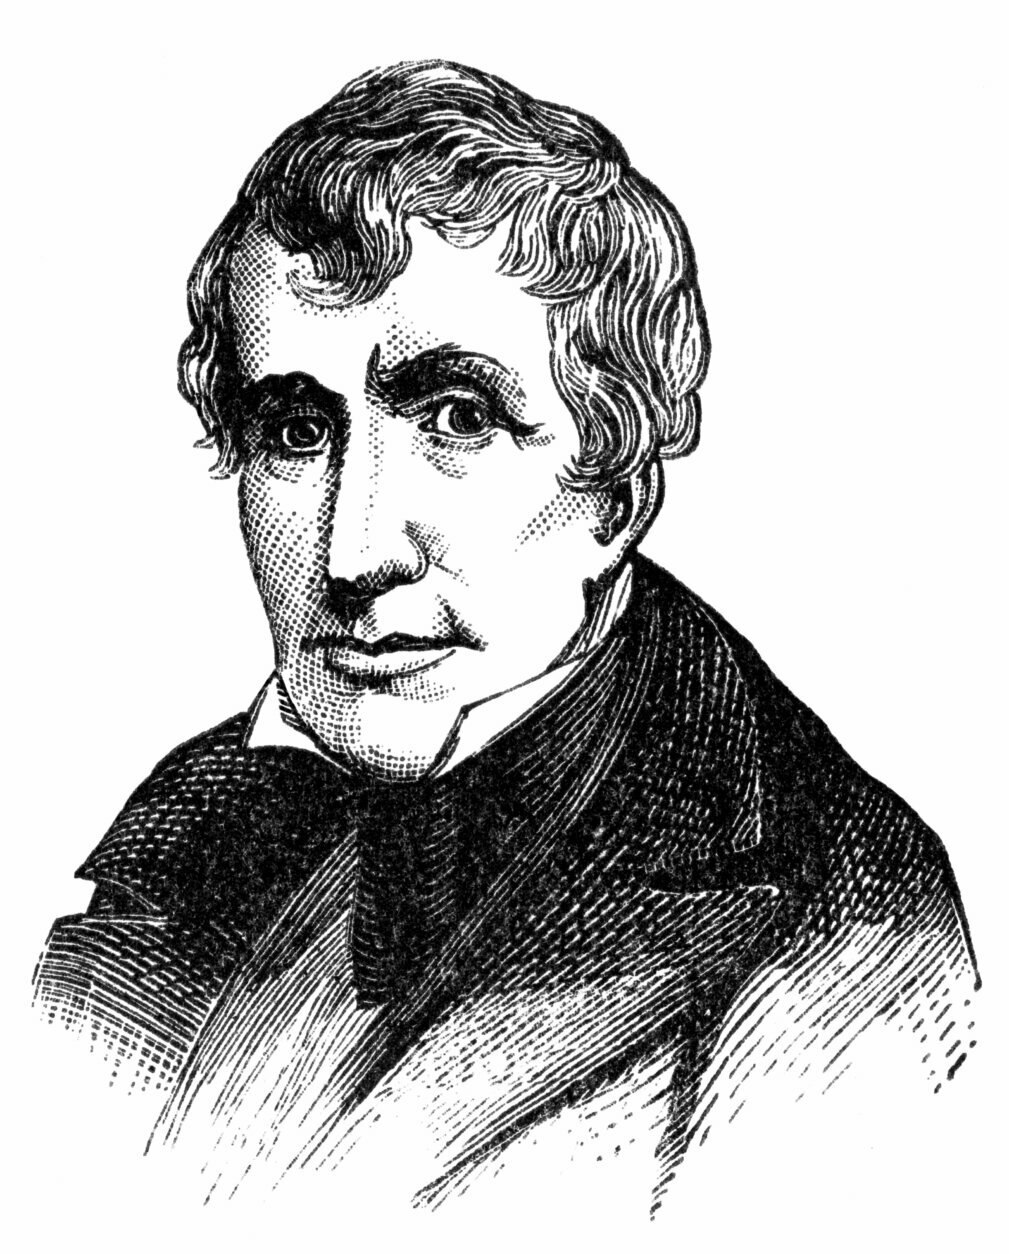 """<p><strong>William Henry """"The Mouth"""" Harrison (1841—1841)</strong></p> <p>While the aim here is to find unusual things about the presidents, Harrison, who died after a month in office, didn't have a chance to make much of a mark. Sworn in March 4, 1841, he died April 4, 1841.</p> <p>You could say he packed a lot of superlatives into a short time: His was the shortest presidency, but he gave the longest inaugural address; at more than 8,400 words, it clocked in at more than two hours. (You can read it <a href=""""http://www.presidency.ucsb.edu/ws/index.php?pid=25813"""" target=""""_blank"""" rel=""""noopener noreferrer"""">on The American Presidency Project site</a>, though I&#8217;ll bet you several drinks you won&#8217;t bother to finish.) At the time, he was also the oldest president — 68 when he was sworn in — and held on to that title until Ronald Reagan in 1981.</p> <p>By the way, <a href=""""https://wtop.com/inauguration/2017/01/solemnly-swear-youll-enjoy-inauguration-trivia-quiz/slide/1/"""" target=""""_blank"""" rel=""""noopener noreferrer"""">as I've pointed out before</a>, the common story is that Harrison was killed by a case of pneumonia that he caught from giving that marathon inaugural address in the cold and rain without a hat, but <a href=""""https://academic.oup.com/cid/article/59/7/990/2895539"""" target=""""_blank"""" rel=""""noopener noreferrer"""">a pair of University of Maryland researchers</a> who went through the diary of his personal physician think it was a case of enteric fever. The next two presidents had gastroenteric problems too, leading them to believe it was a matter of """"the unsanitary conditions"""" in D.C. in the 19th century.</p>"""